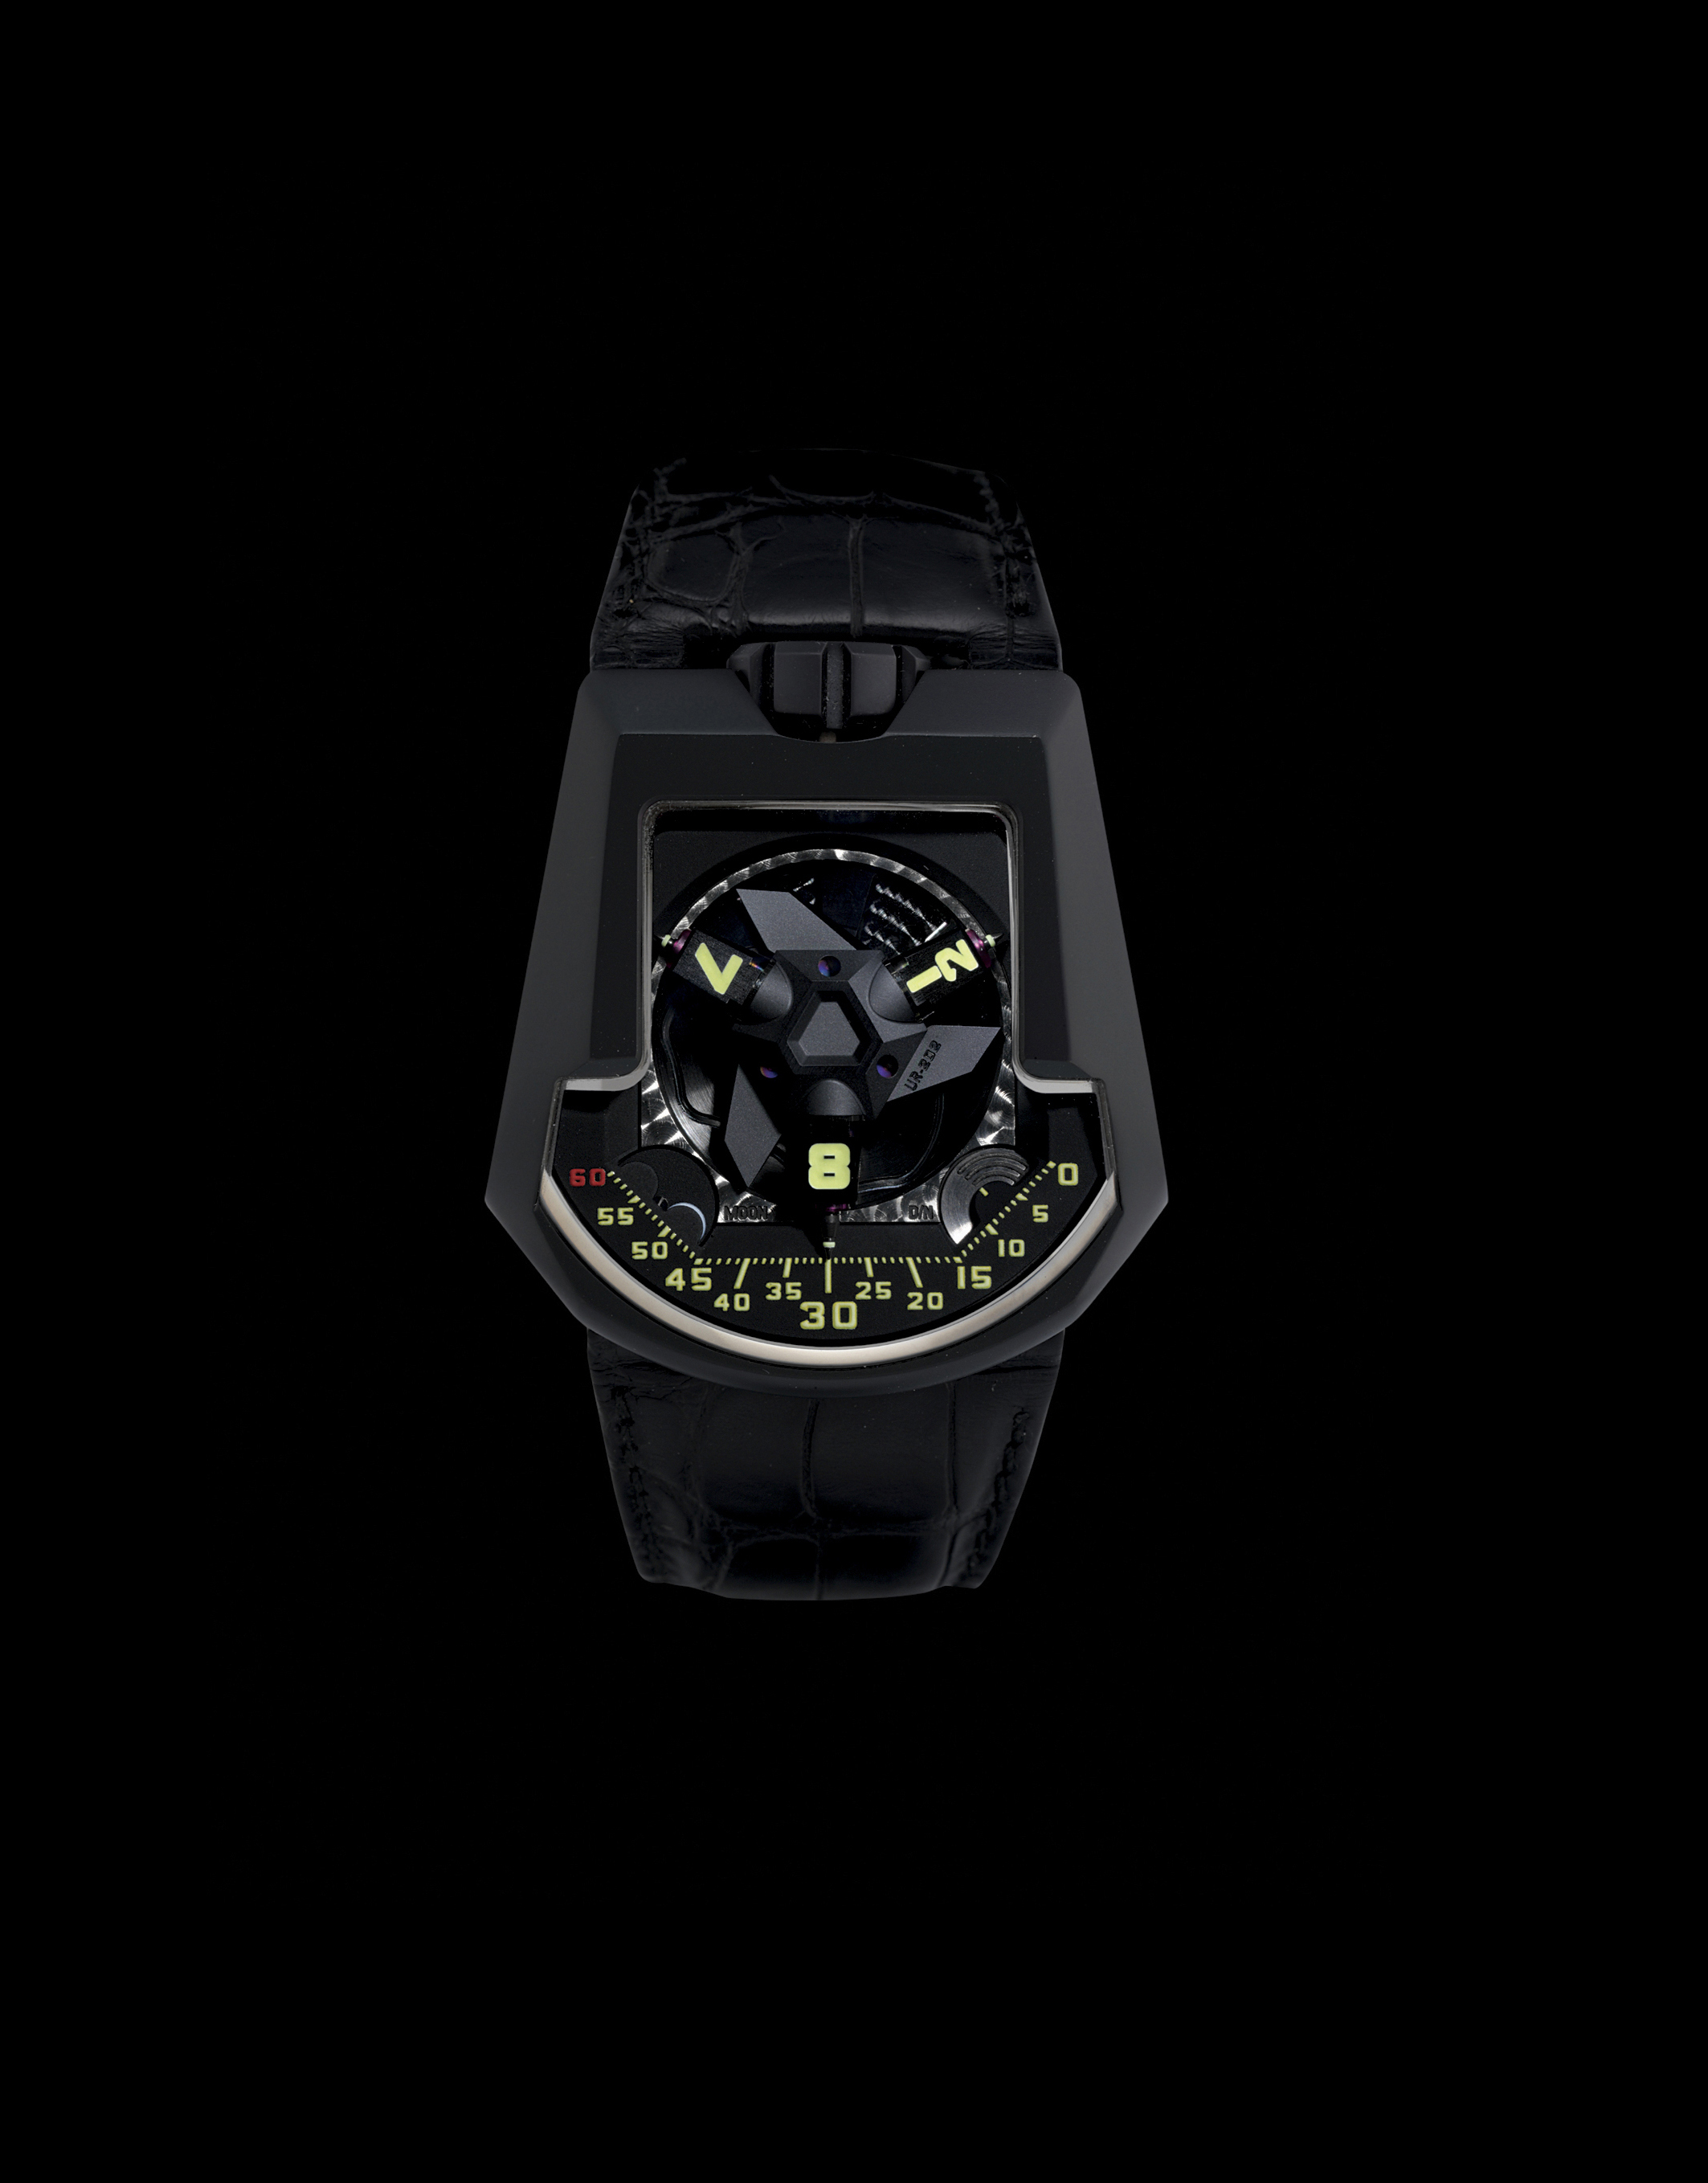 URWERK. A RARE, LARGE AND UNUSUAL TITANIUM AUTOMATIC WRISTWATCH WITH 3-DIMENSIONAL SATELLITE HOUR DISPLAY, TELESCOPIC MINUTE HAND, TWIN TURBINE SYSTEM, MOON-PHASES AND DAY/NIGHT INDICATION